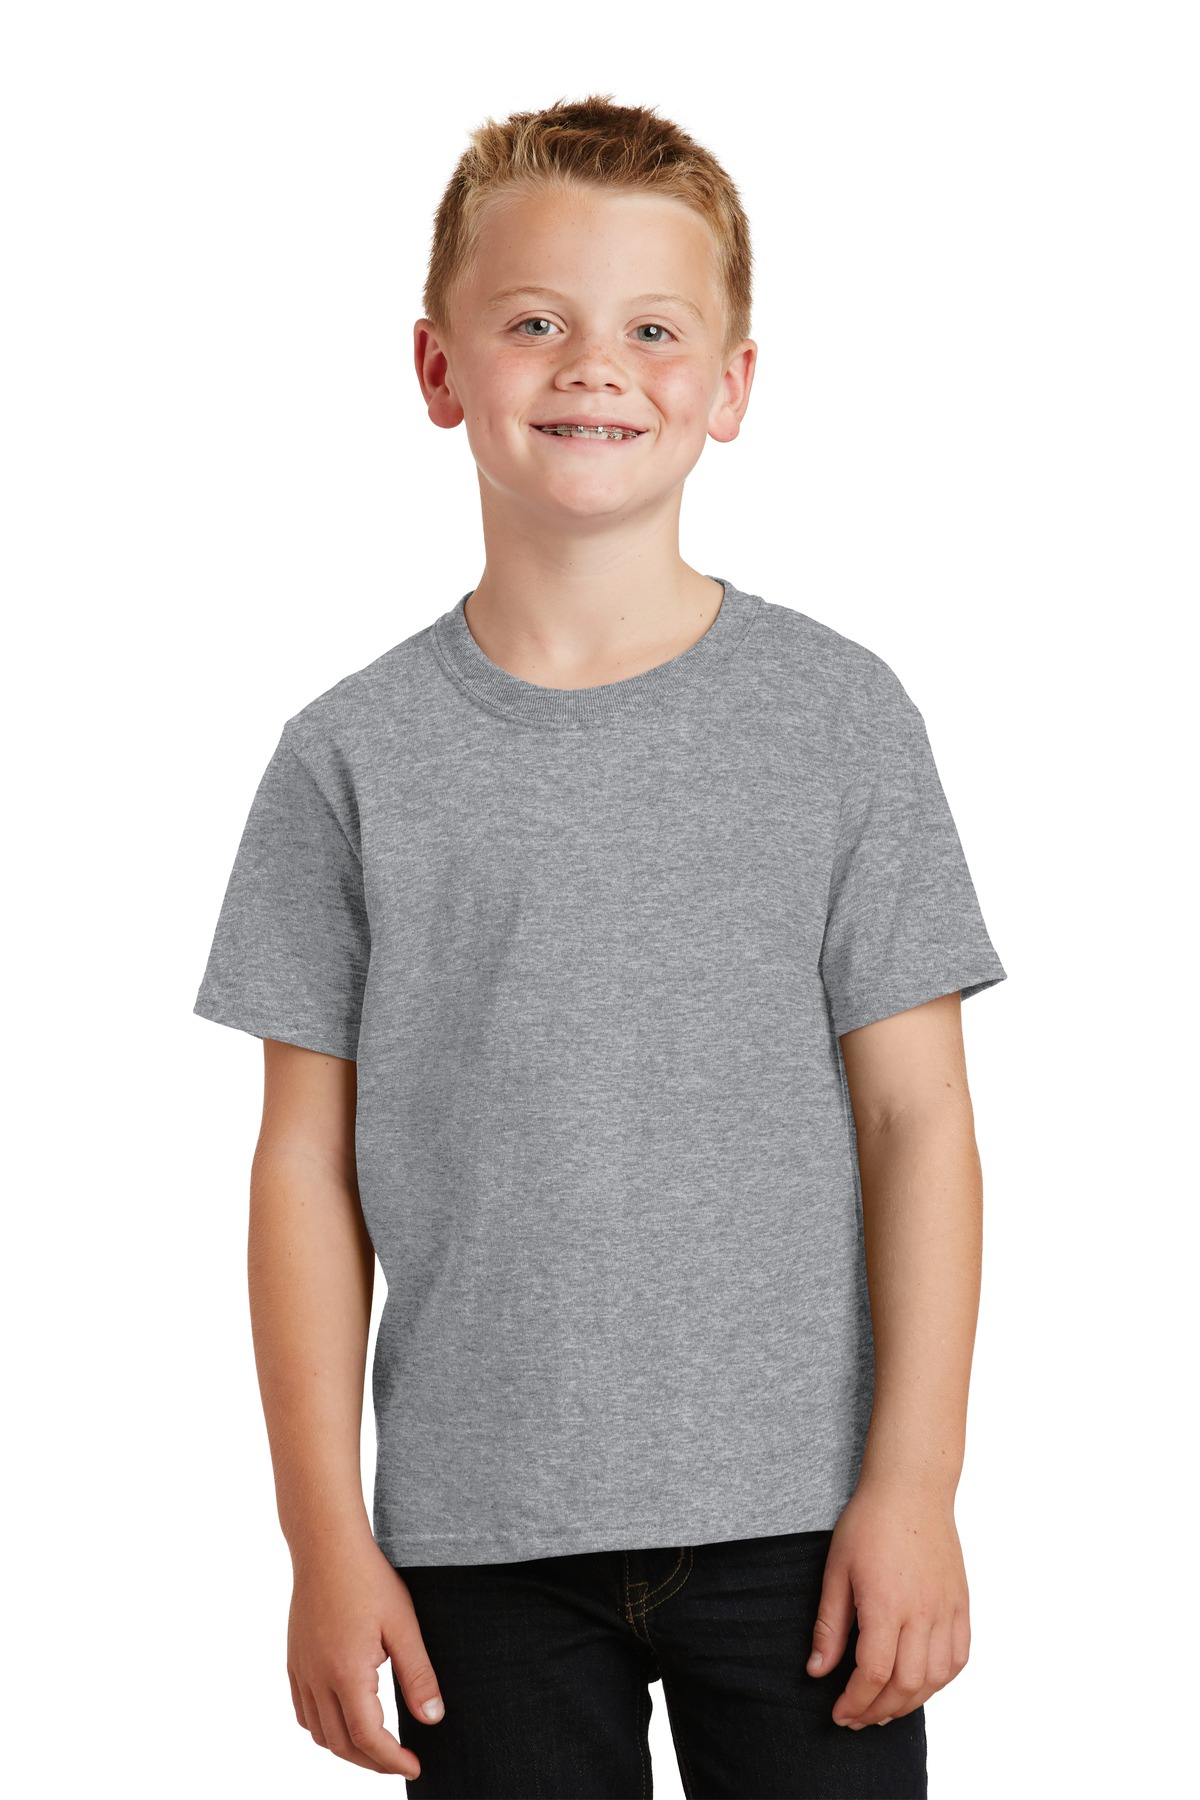 Port & Company ®  - Youth Core Cotton Tee. PC54Y - Athletic Heather*